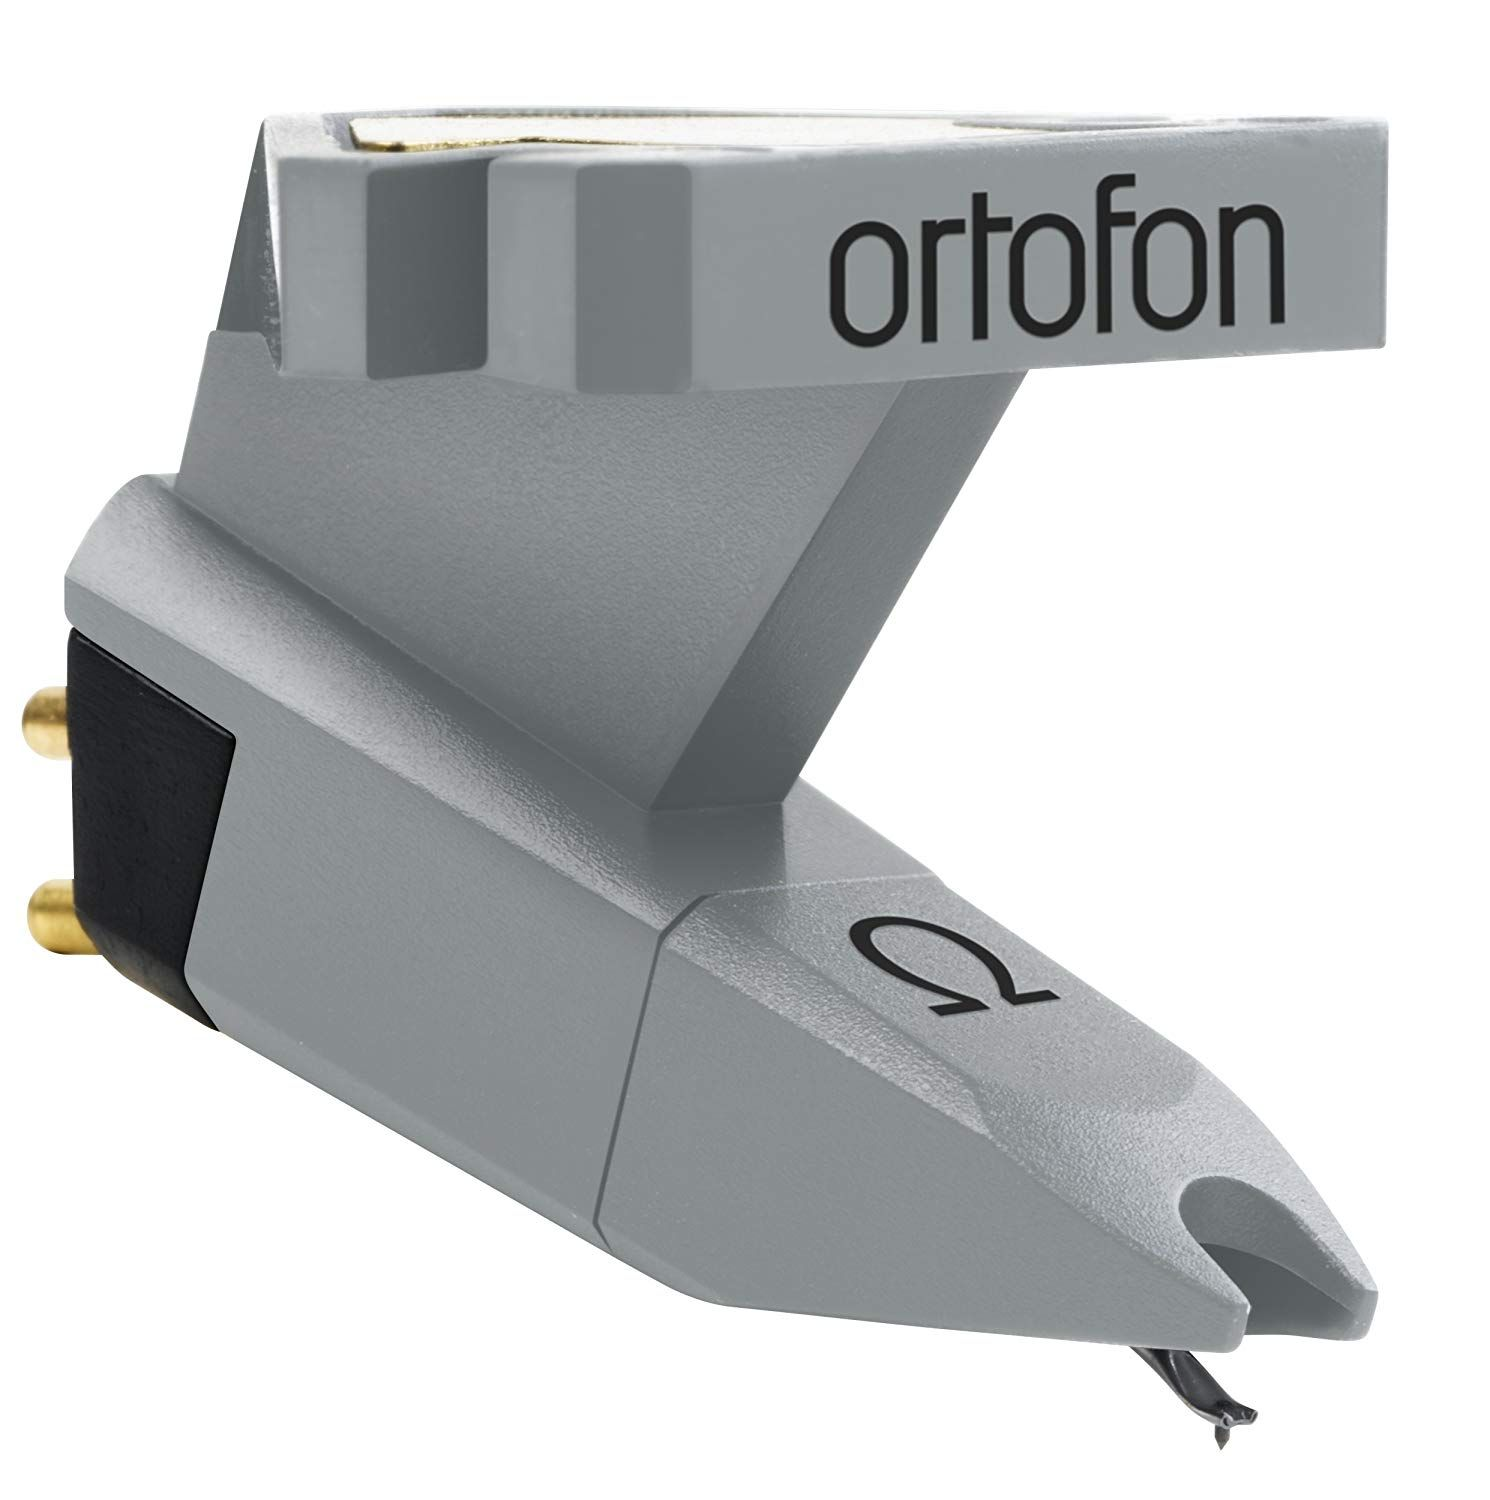 Ortofon Omega Single Pack 1 X Phono Cartridge Fitted With Stylus Only 18 5 Turntable Cartridge Phono Cartridge Turntable